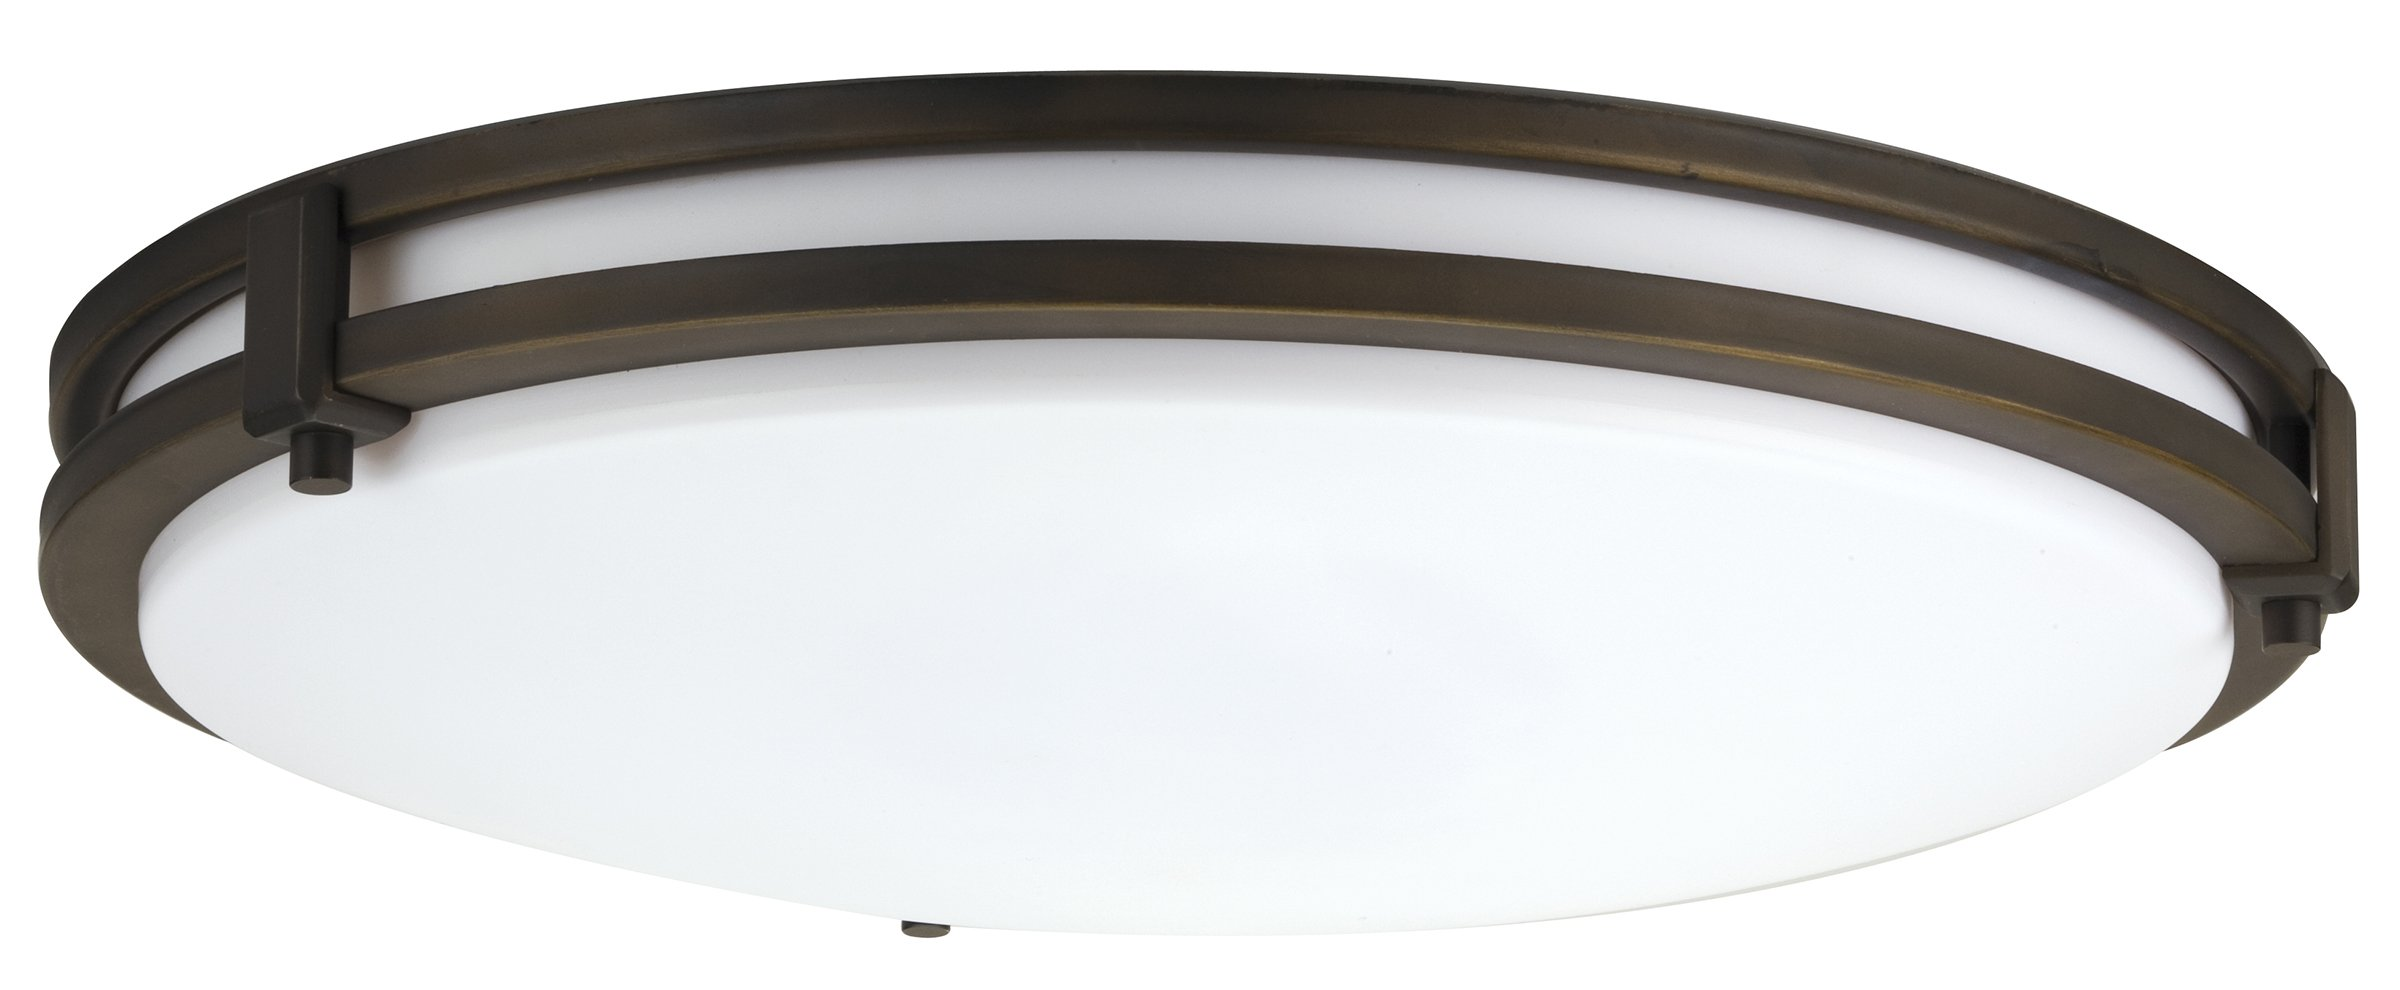 Lithonia Lighting FMSATL 16 20840 BZA M4 Antique Bronze LED Saturn Flushmount